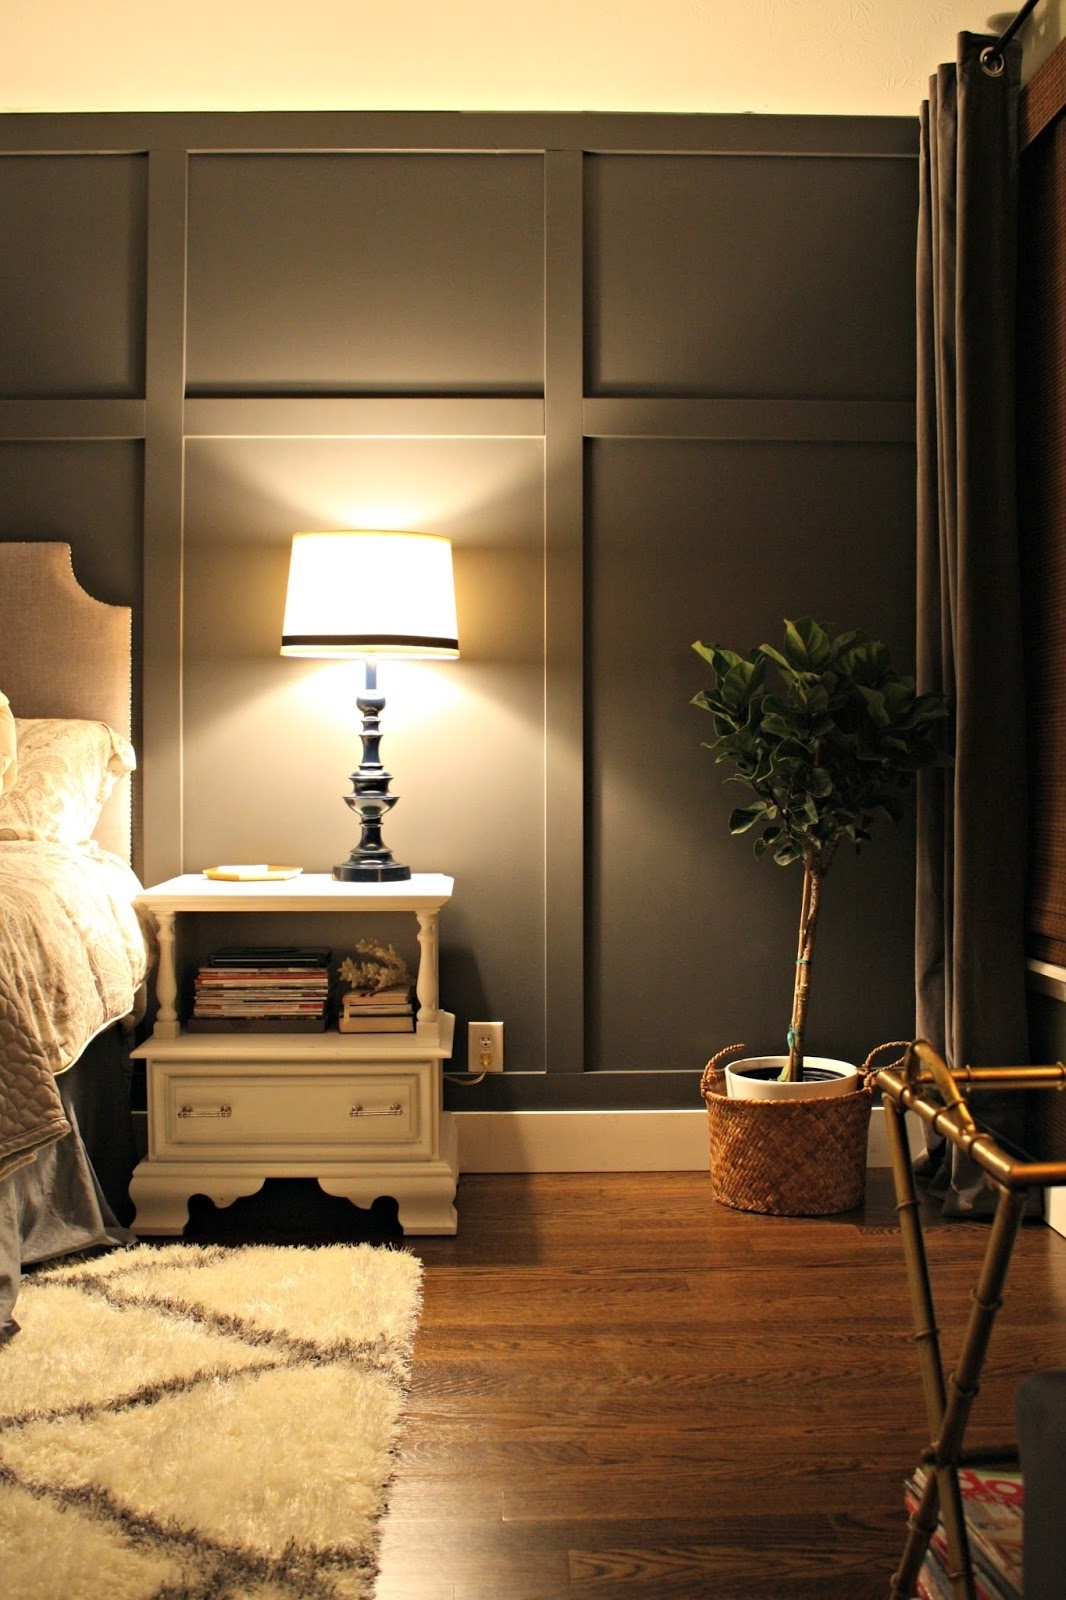 Bedroom Design: Accent Wall Panels Accent Wall Ideas For Small Pertaining To Latest Wall Accents For Living Room (View 4 of 15)